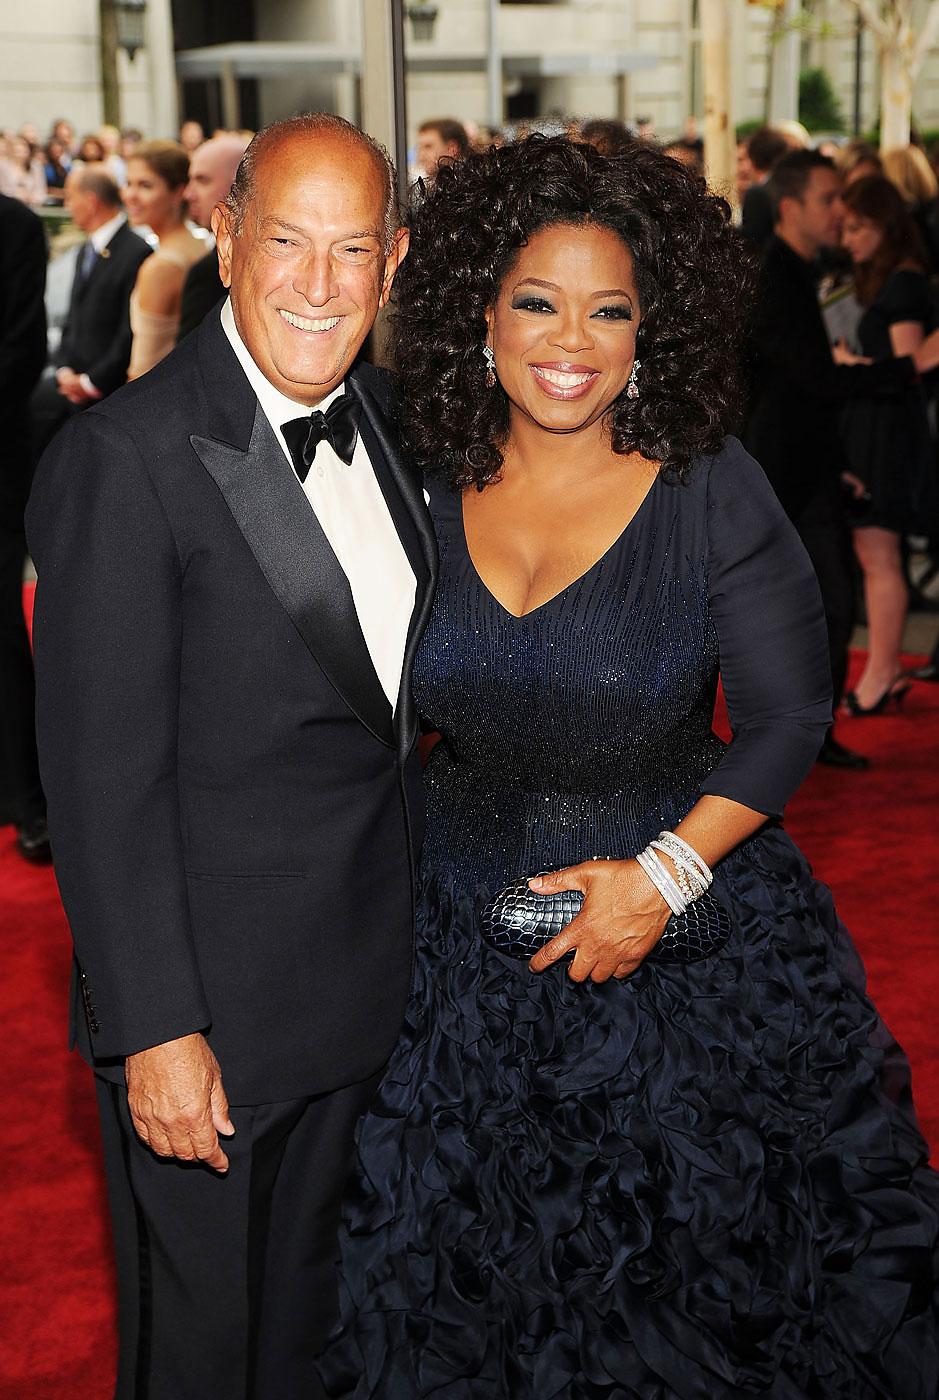 Oscar de la Renta and Oprah Winfrey attend the Costume Institute Gala Benefit to celebrate the opening of the  American Woman: Fashioning a National Identity  exhibition at The Metropolitan Museum of Art on May 3, 2010 in New York City.